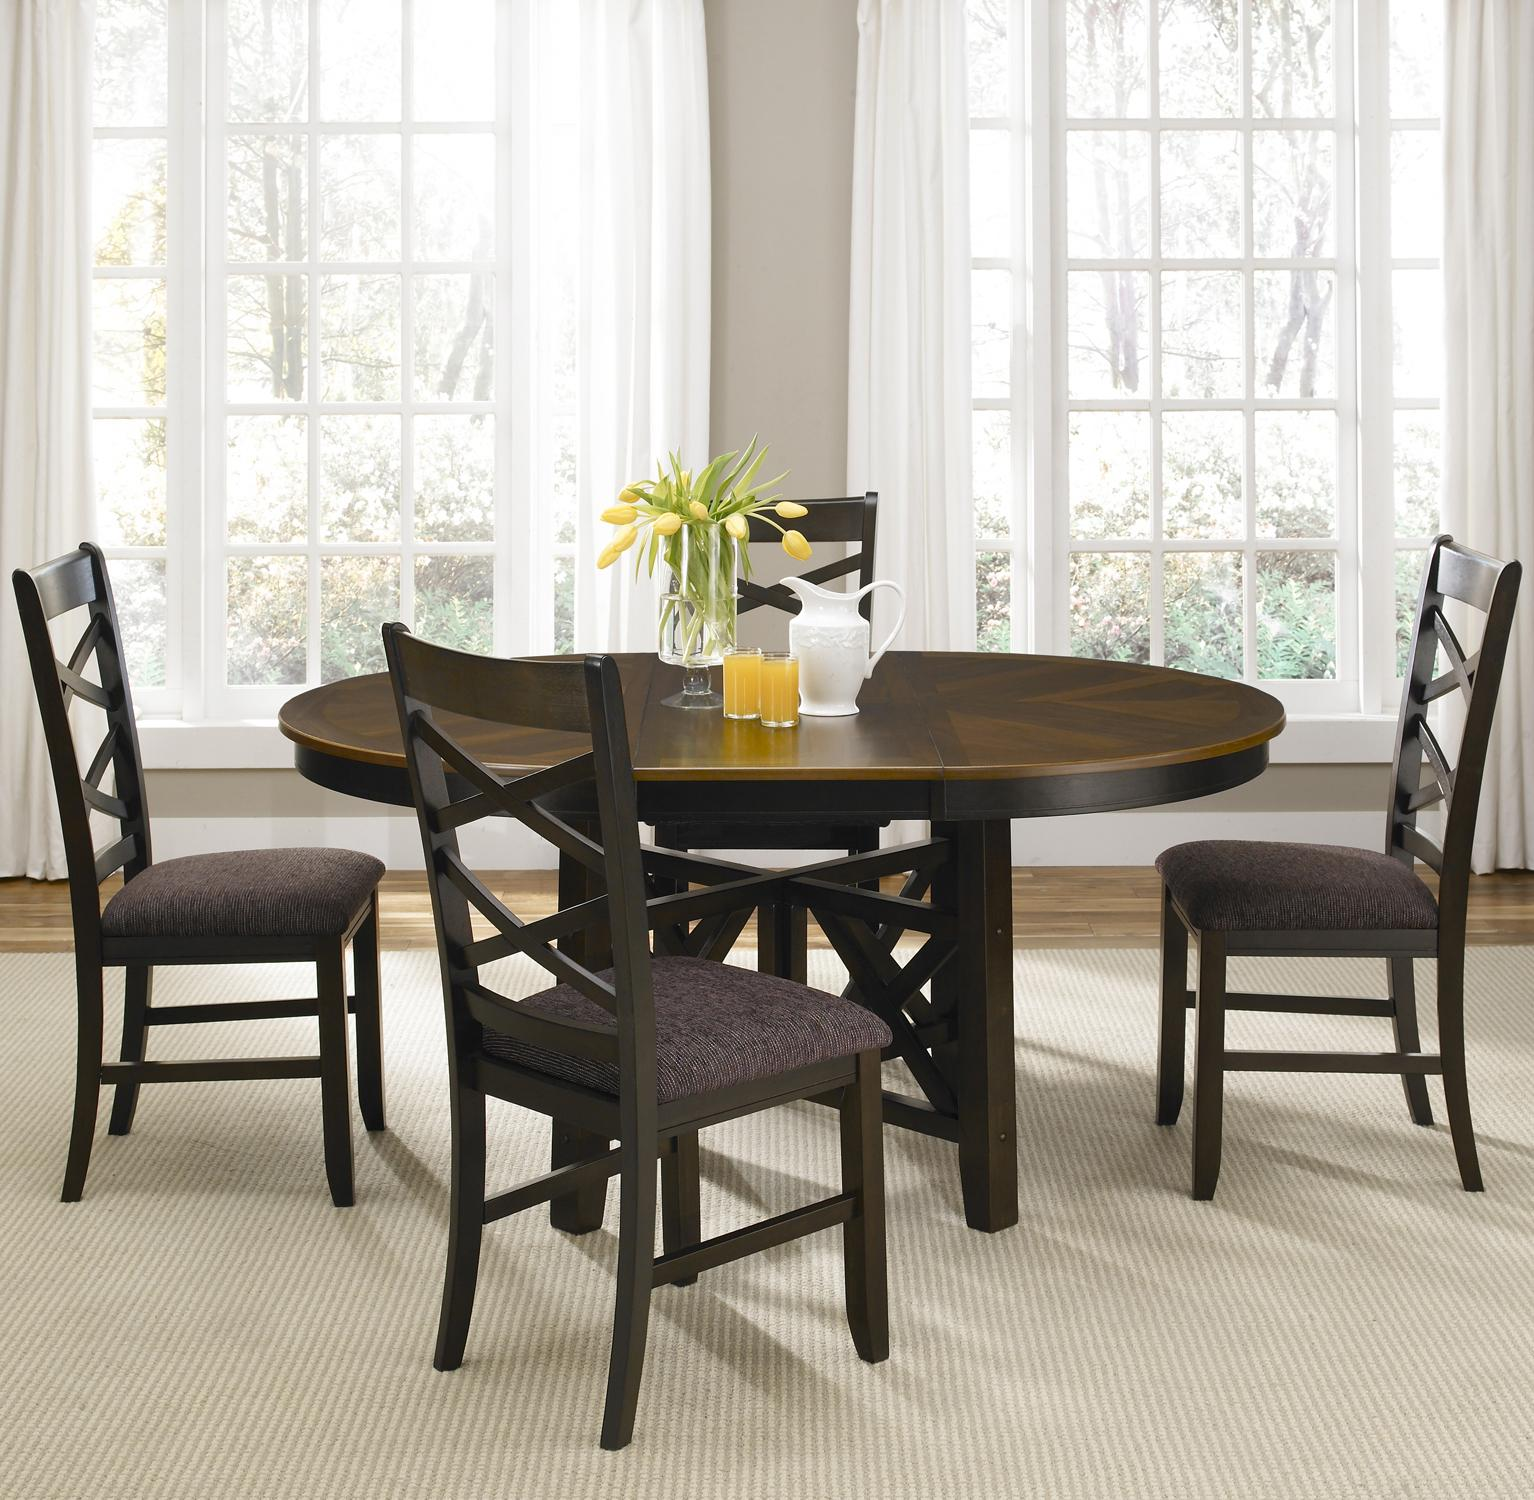 Liberty Furniture Colby 5 Piece Dining Table and Chair Set - Item Number: 74-CD-SET16